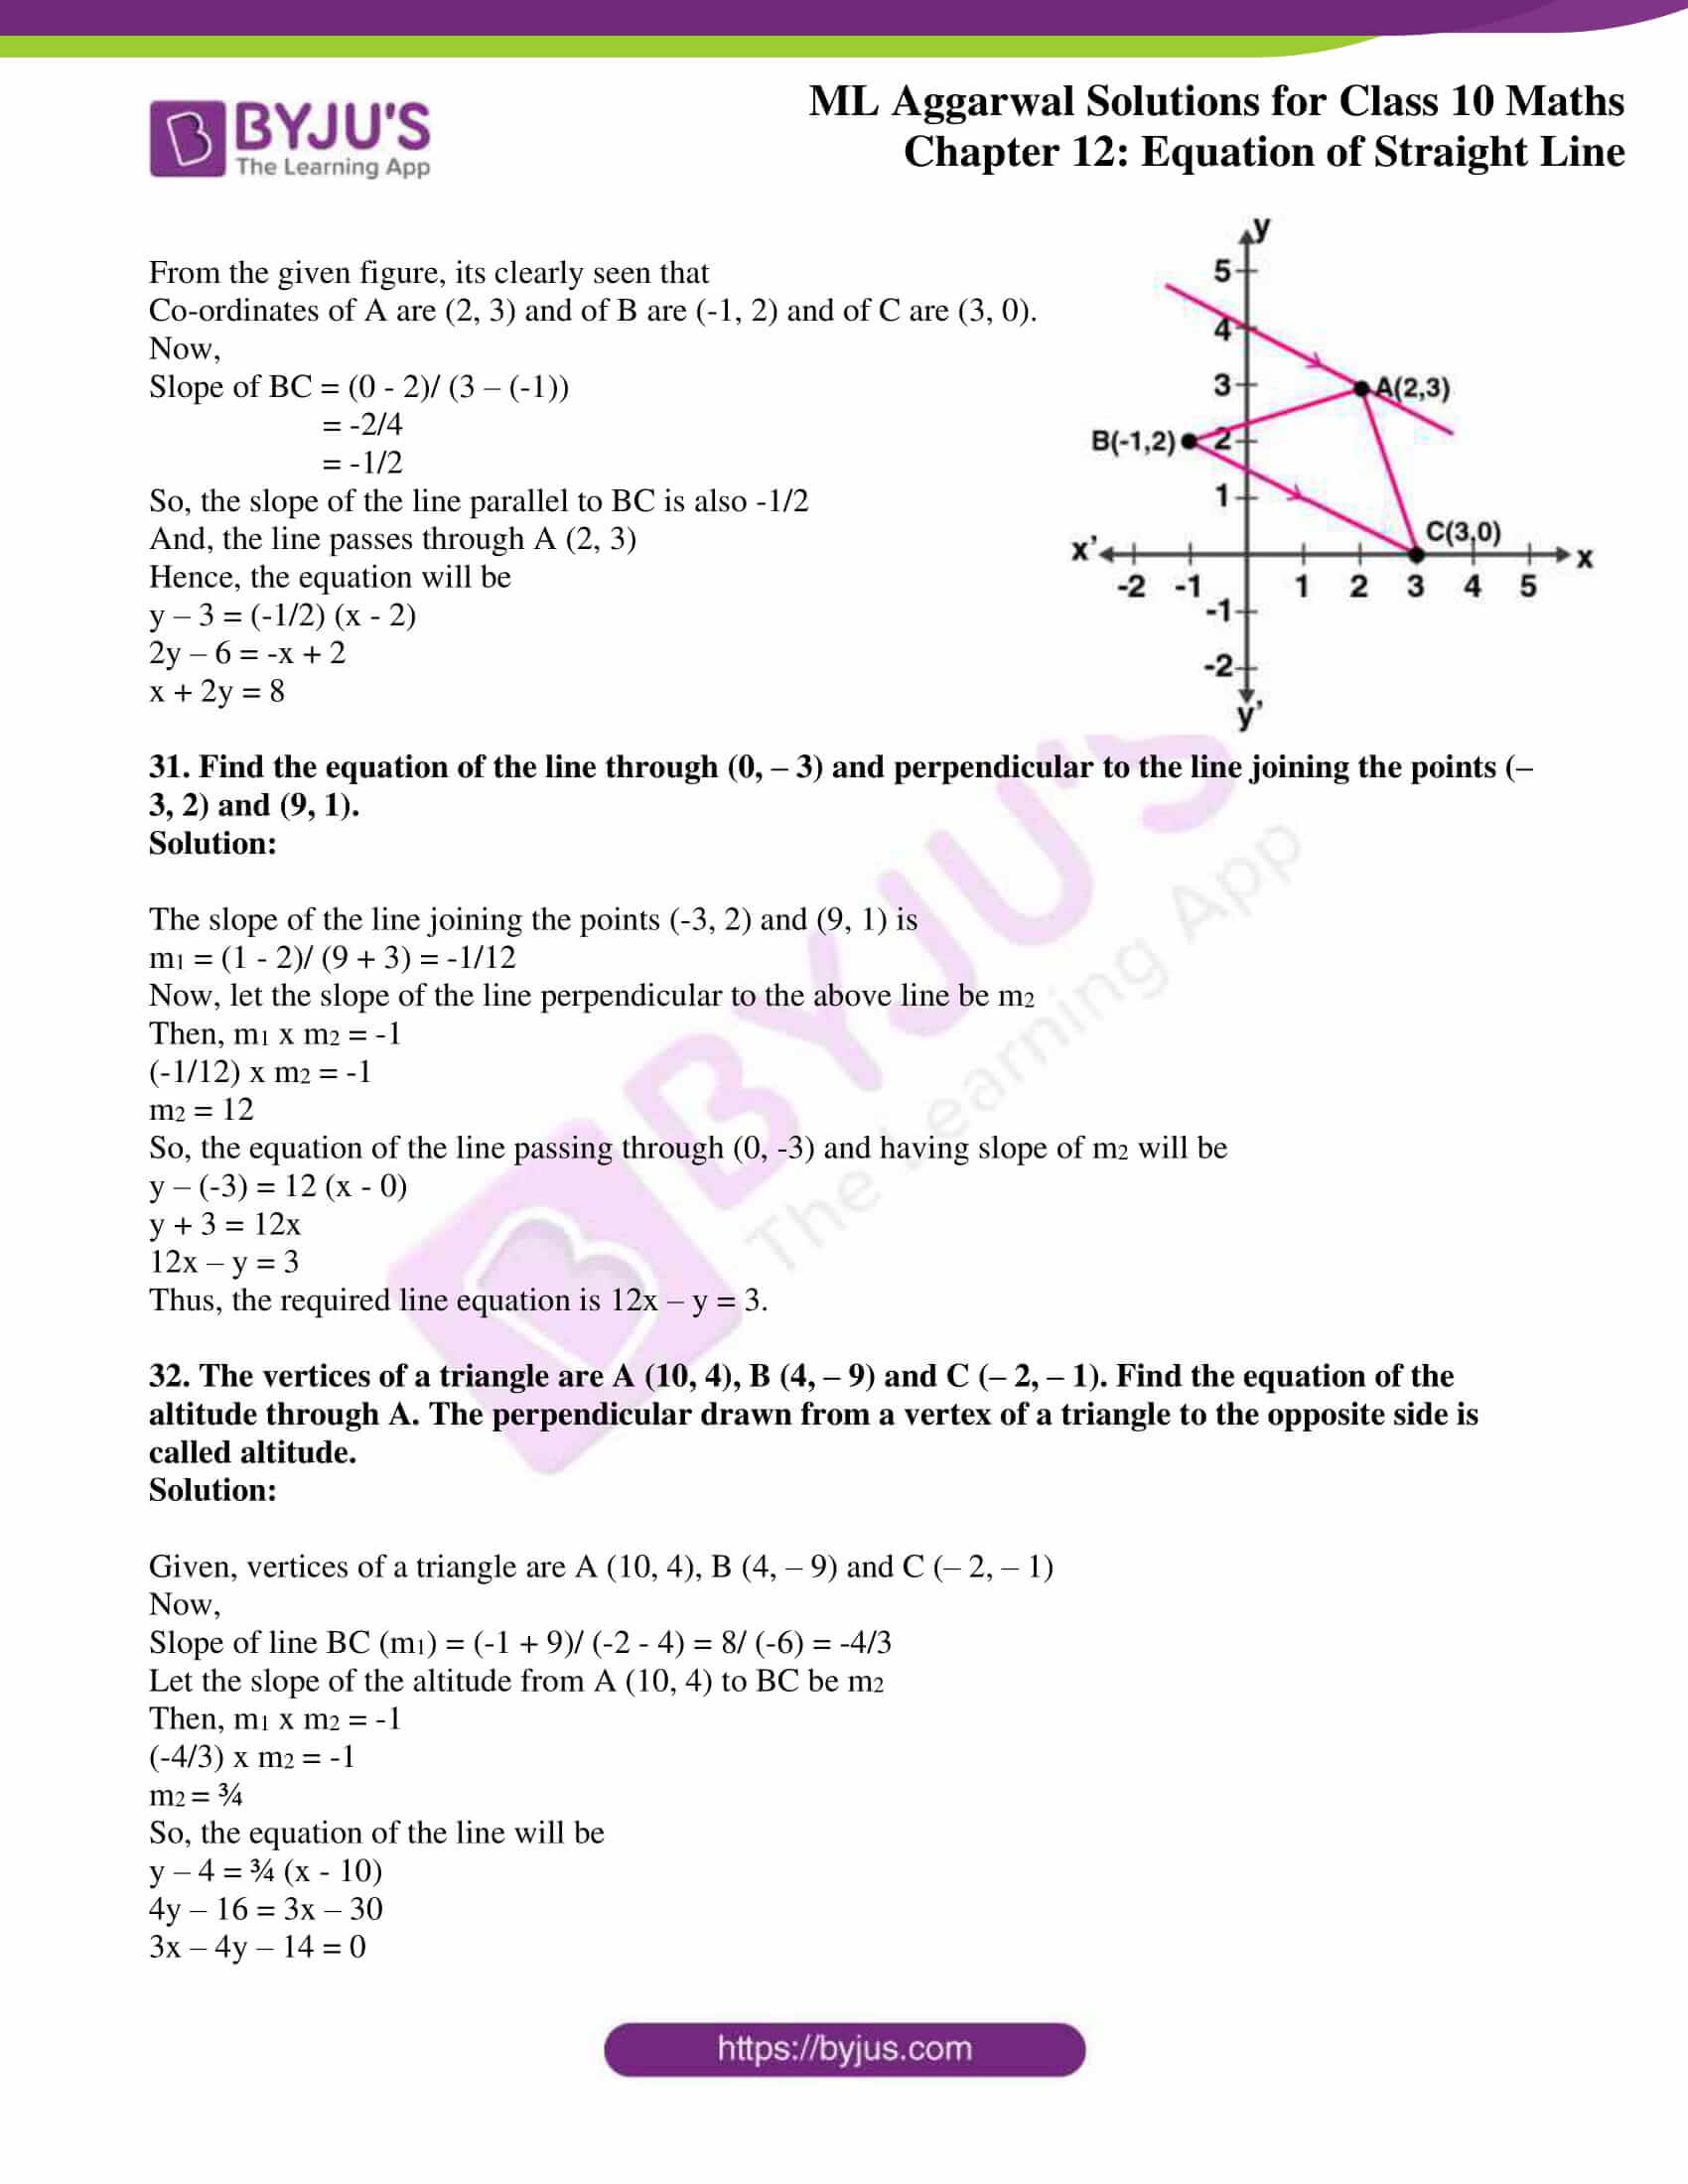 ml aggarwal solutions for class 10 maths chapter 12 28